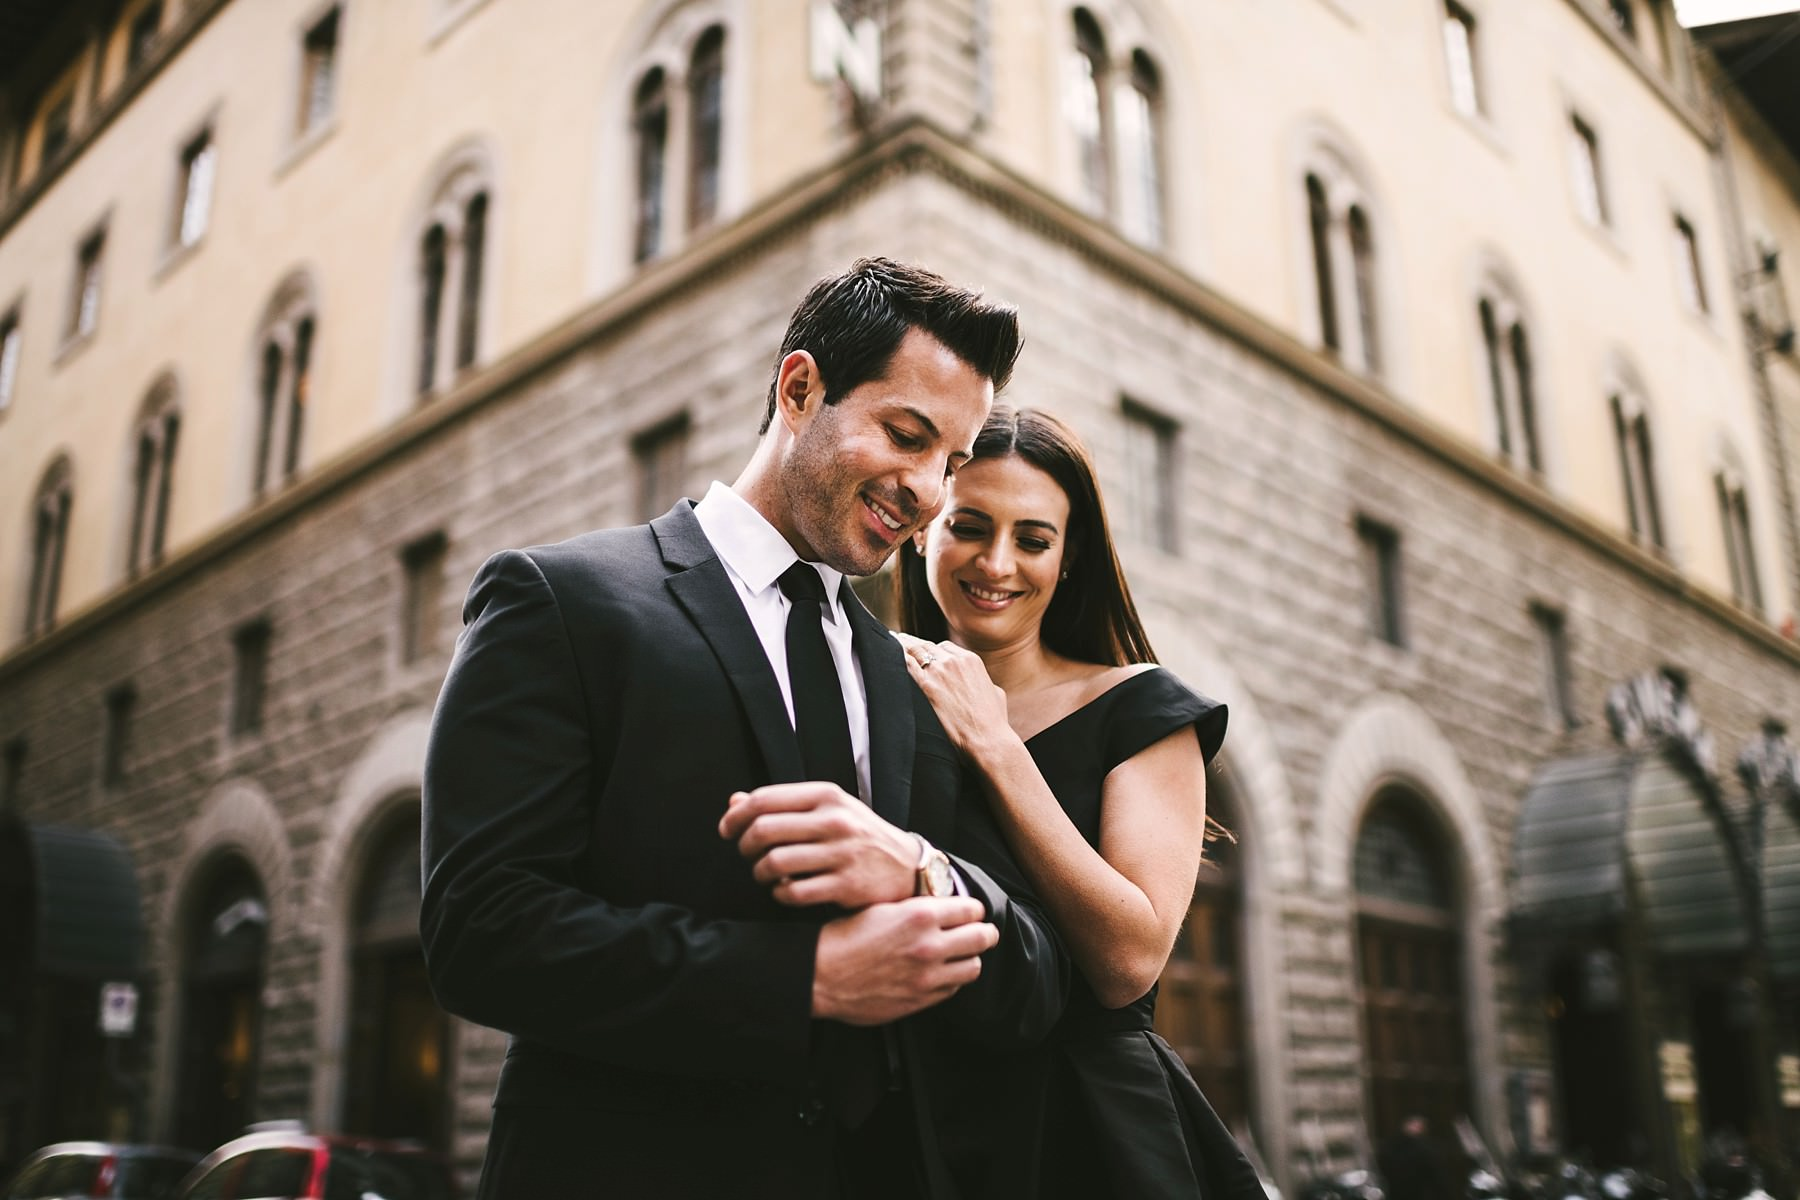 Creative and modern engagement photo in Florence. Love the lines that frame the couple in this photo